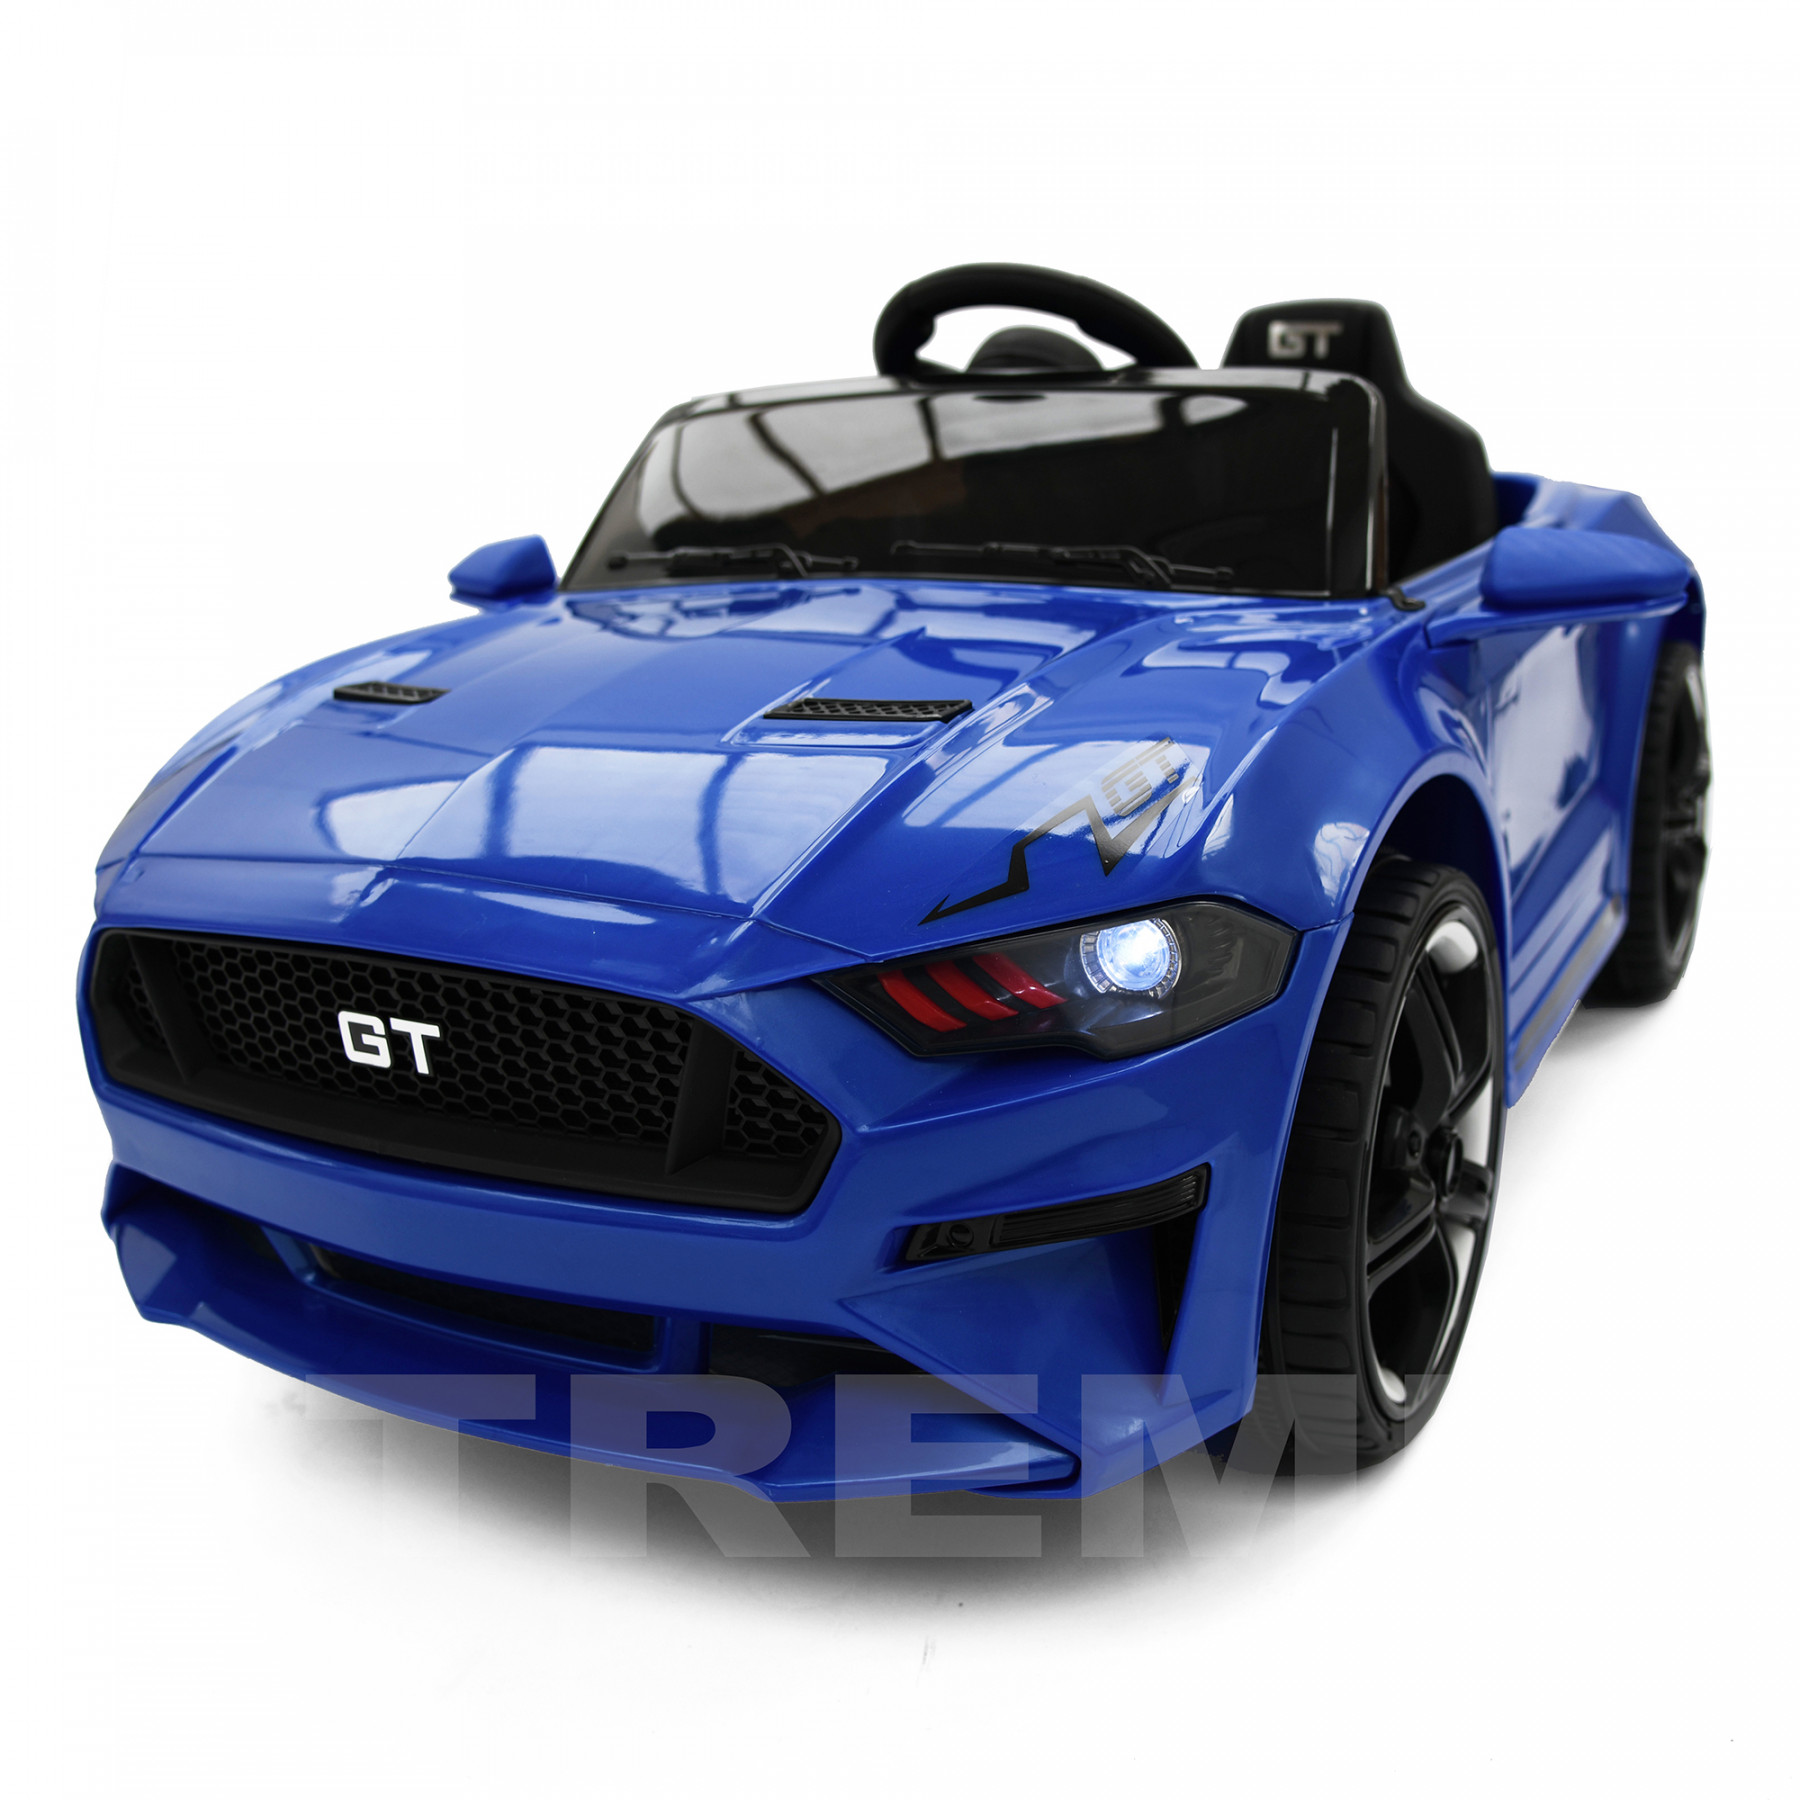 Xtreme 12v Ford Mustang GT Style Ride on Muscle Car Blue